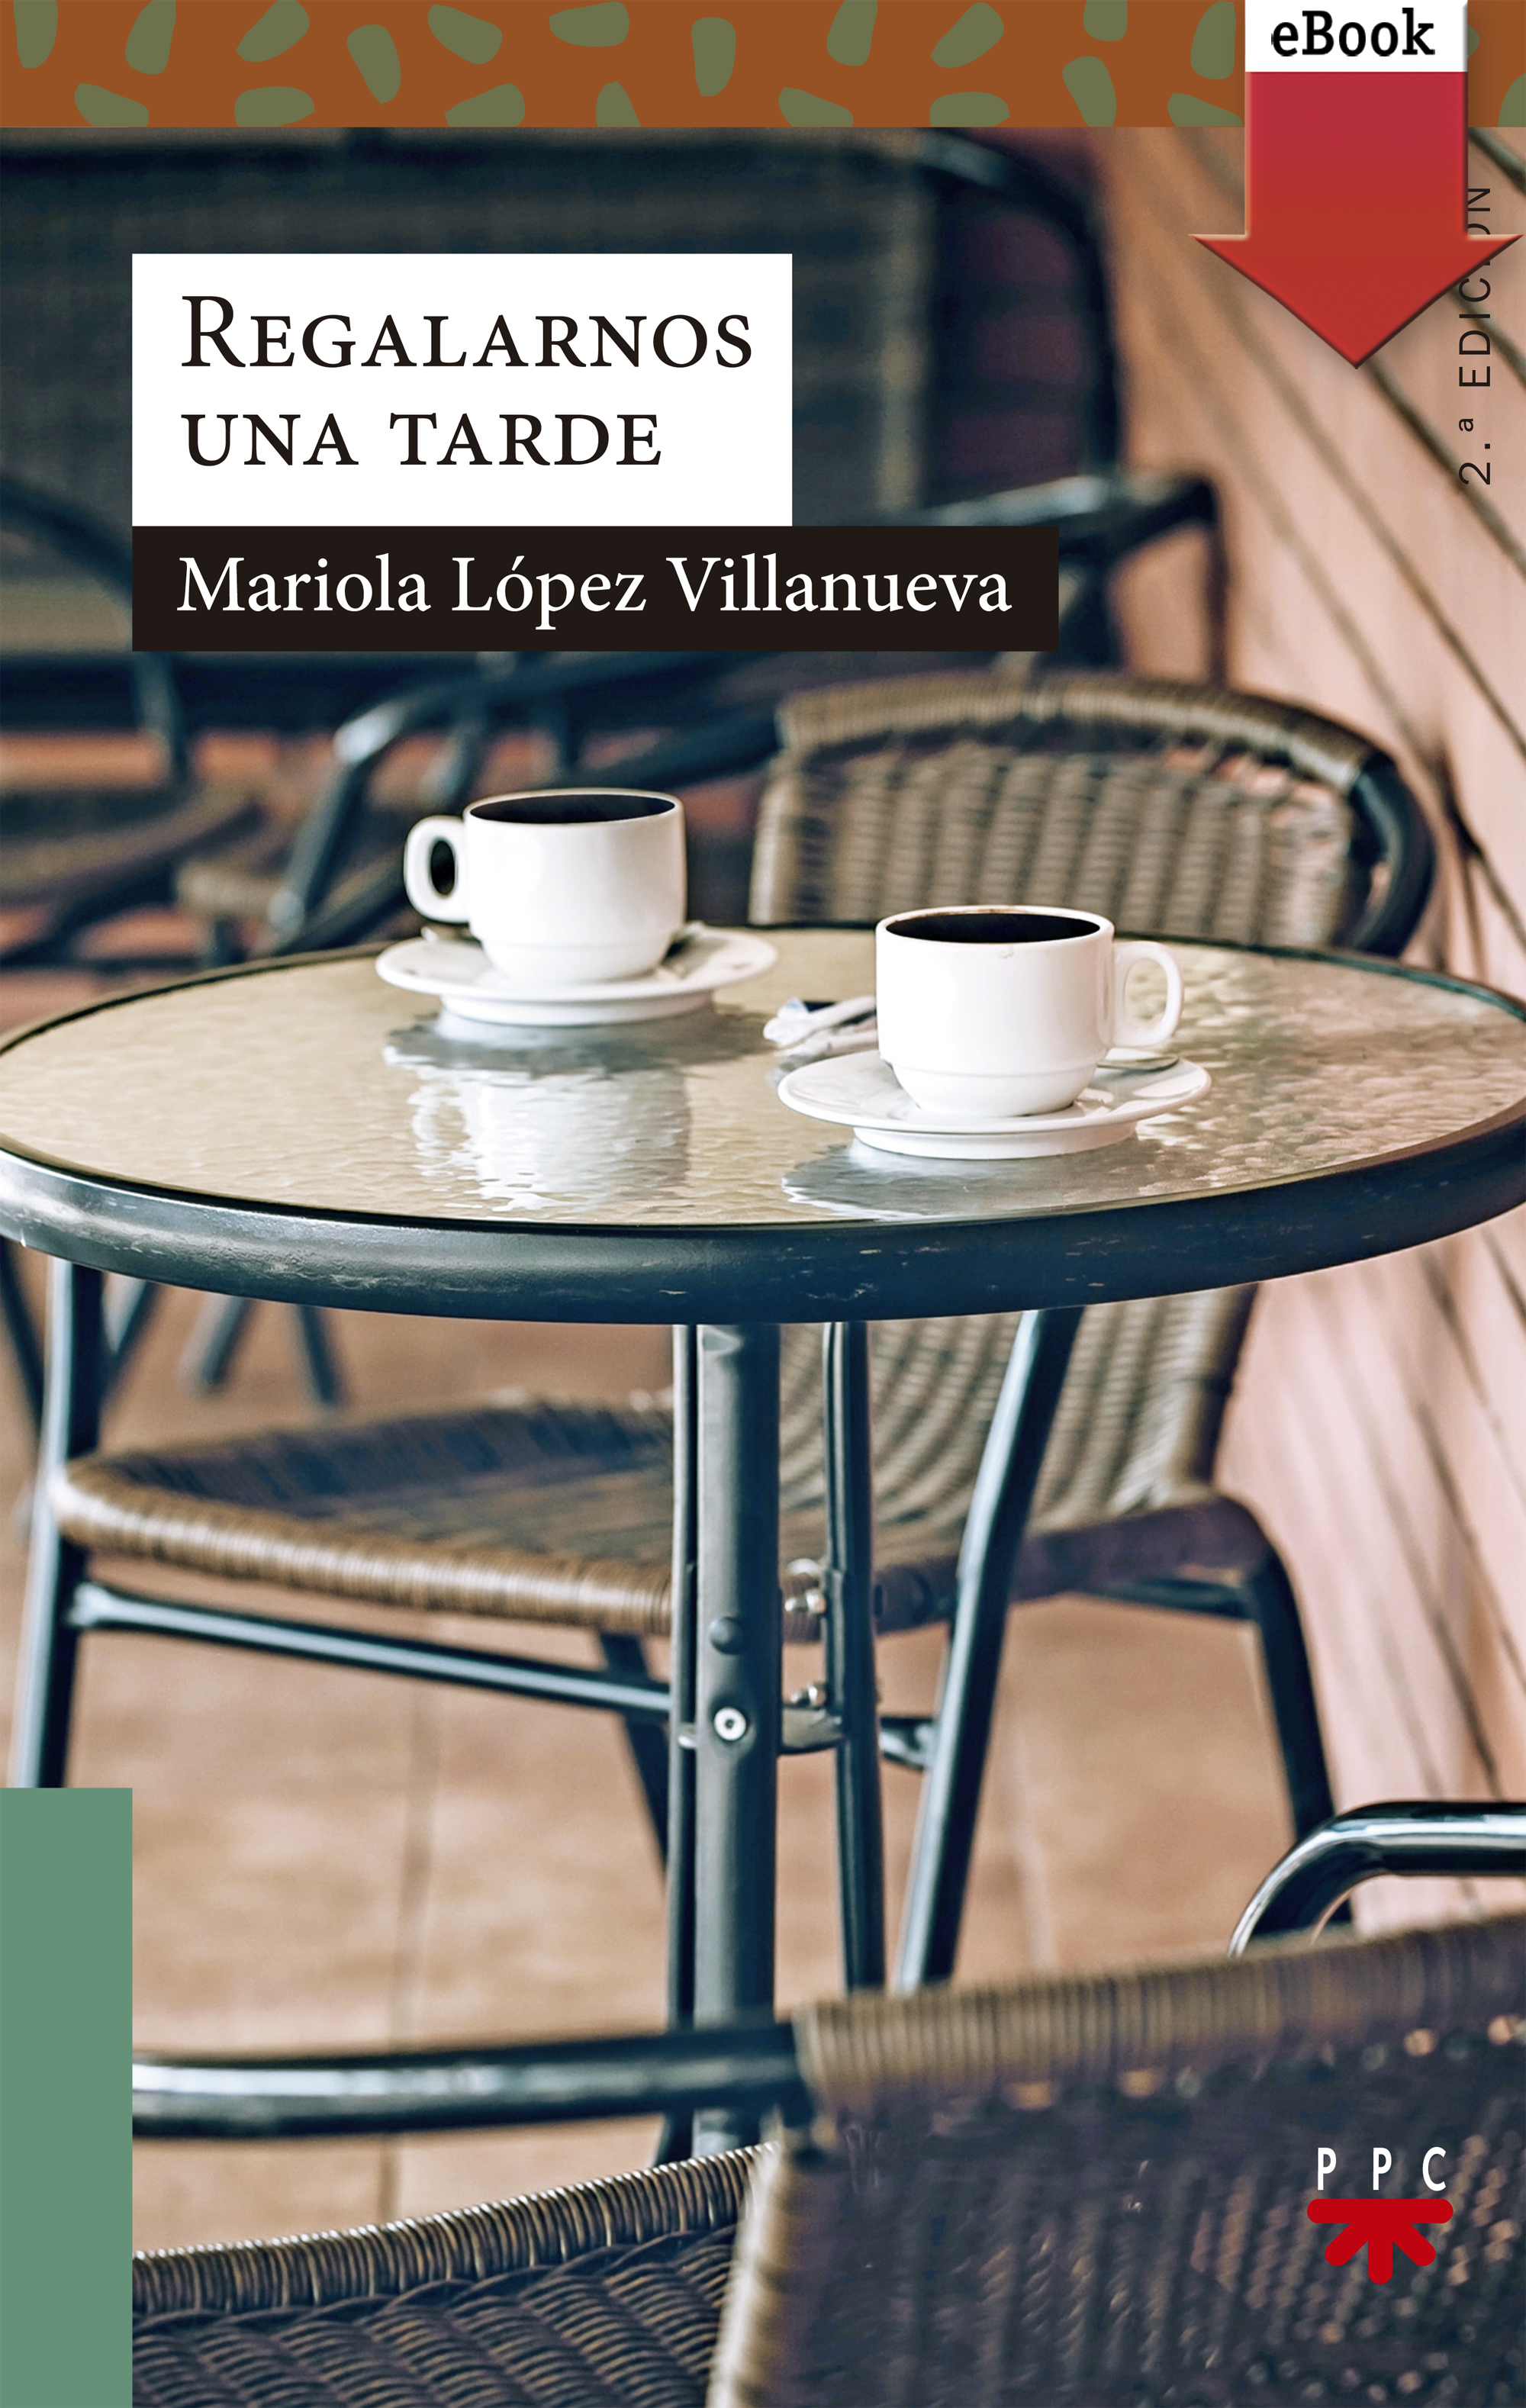 Regalarnos una tarde (eBook-ePub)